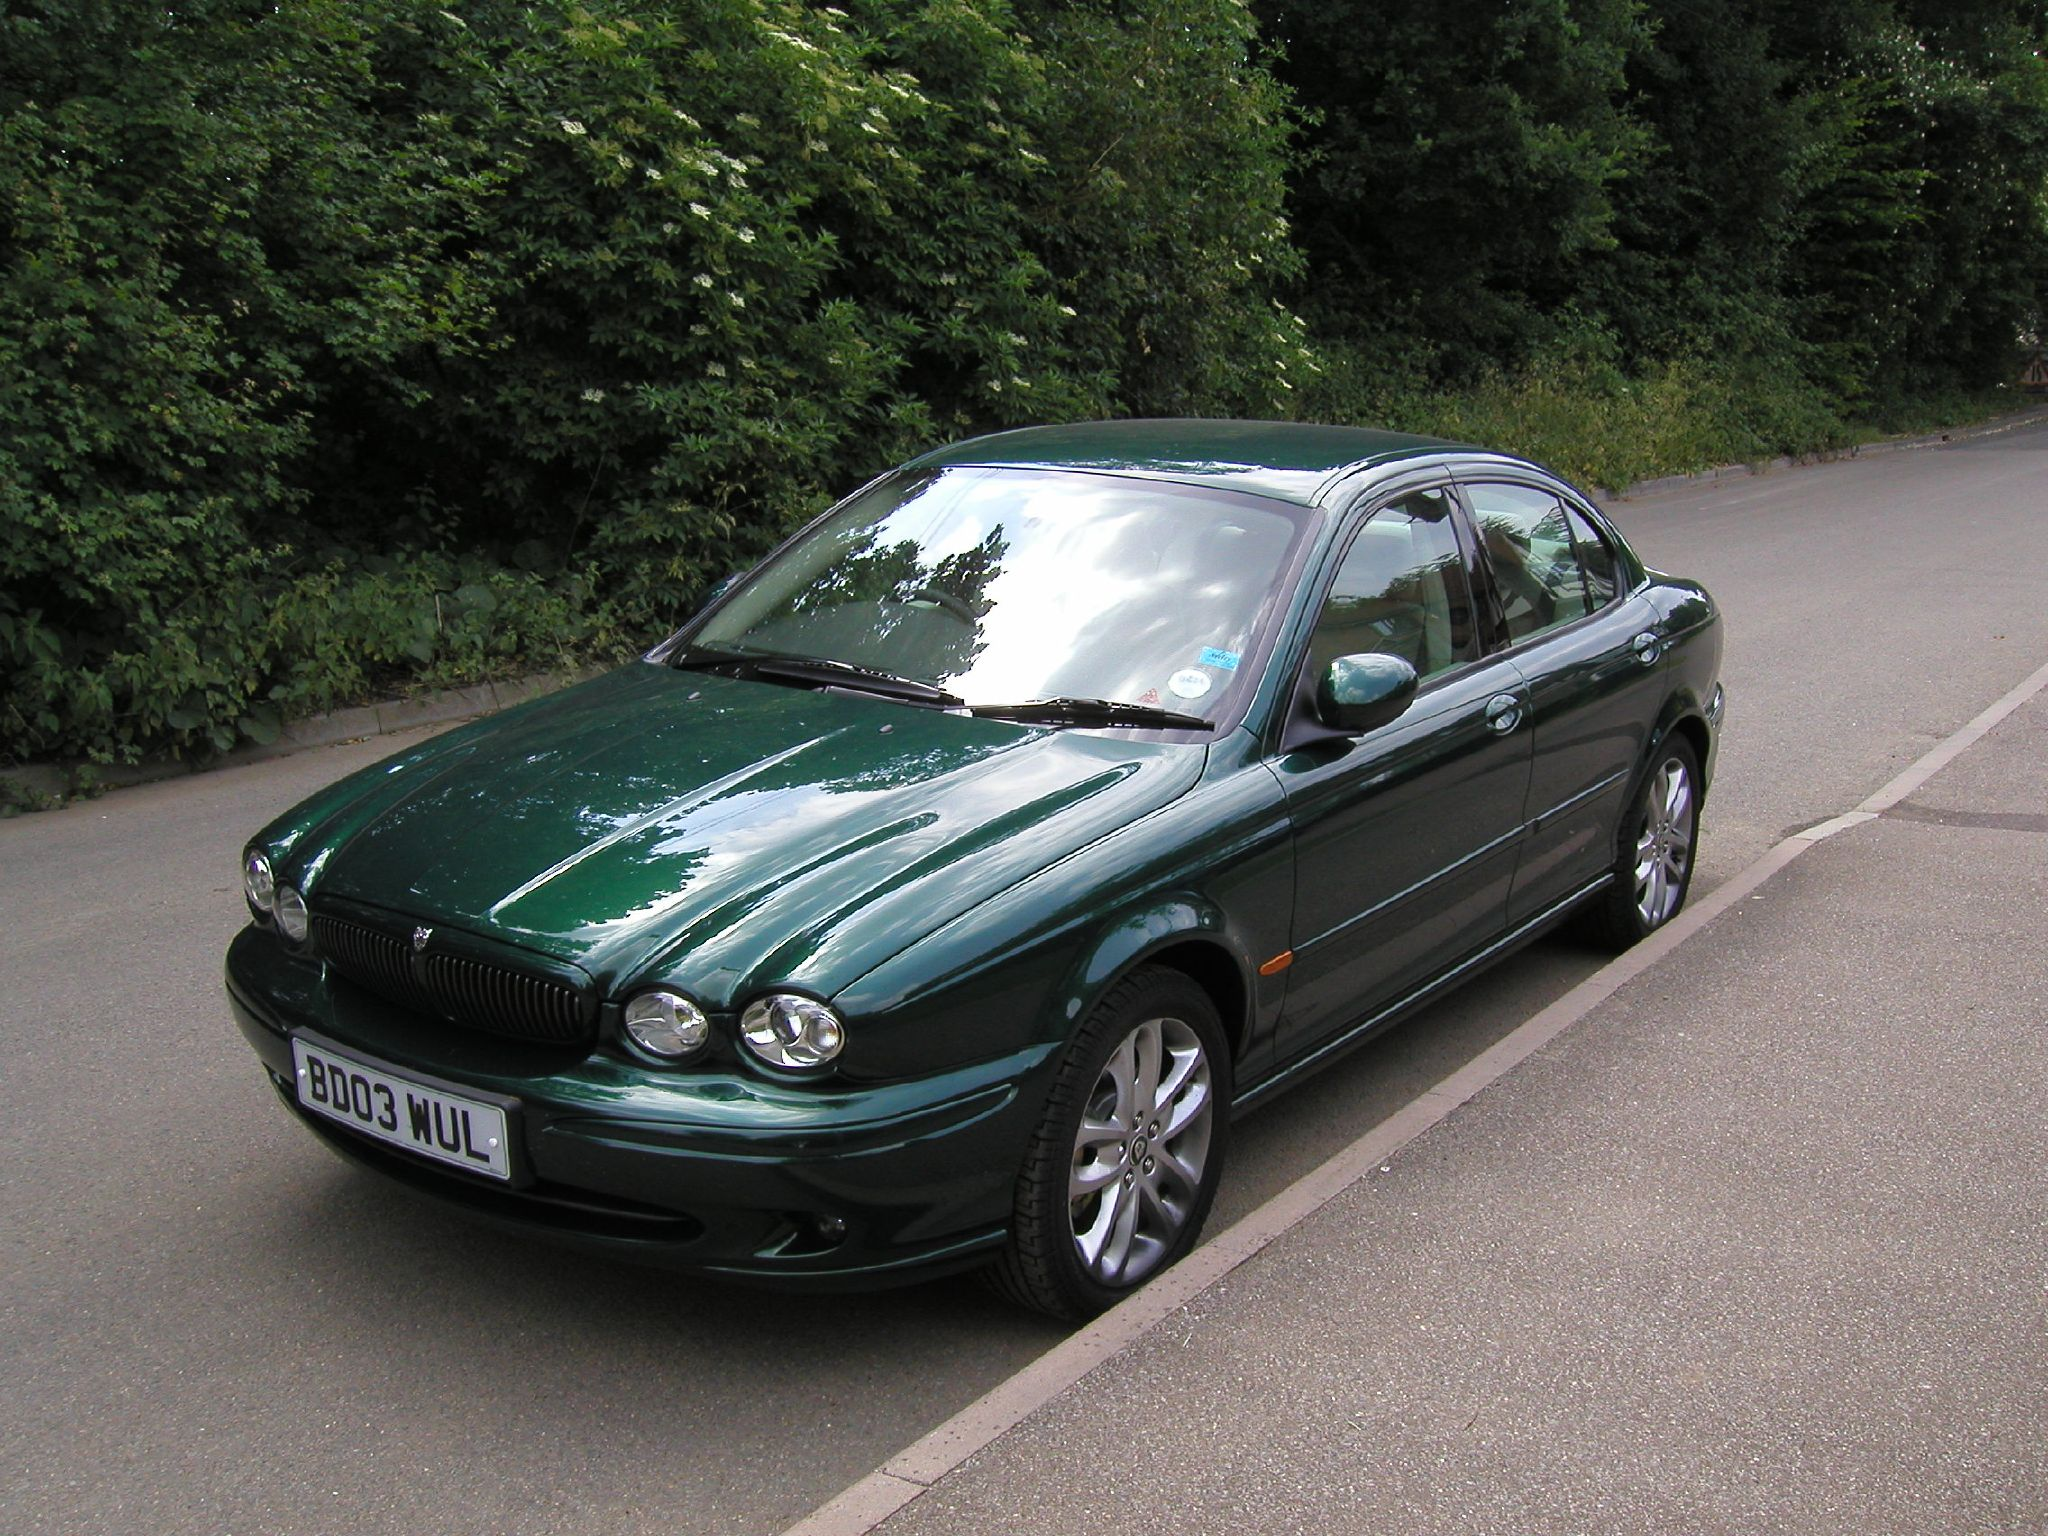 file jaguar x type 3 litre sport the only jag i ever had flickr wikimedia. Black Bedroom Furniture Sets. Home Design Ideas